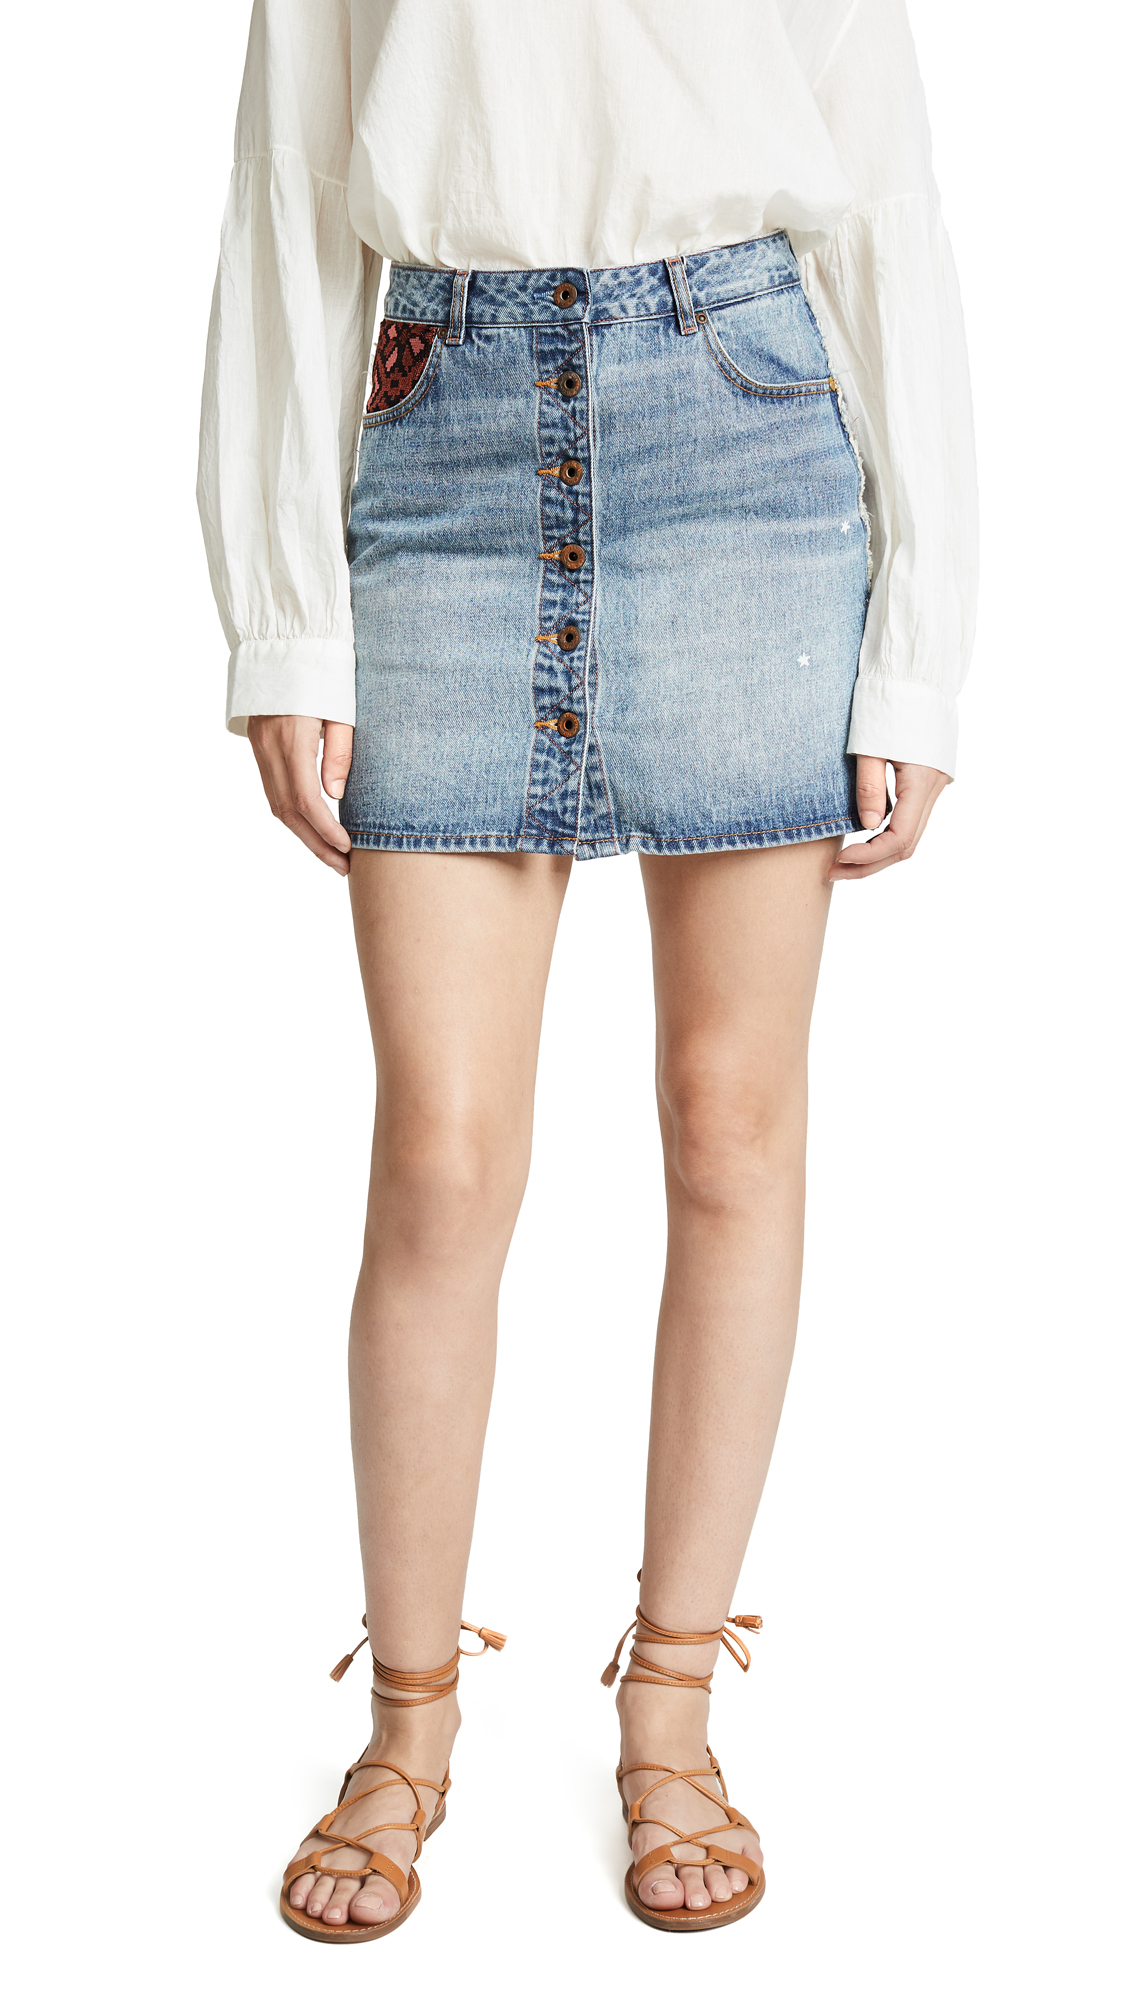 SCOTCH & SODA/MAISON SCOTCH BUTTON UP DENIM MINISKIRT